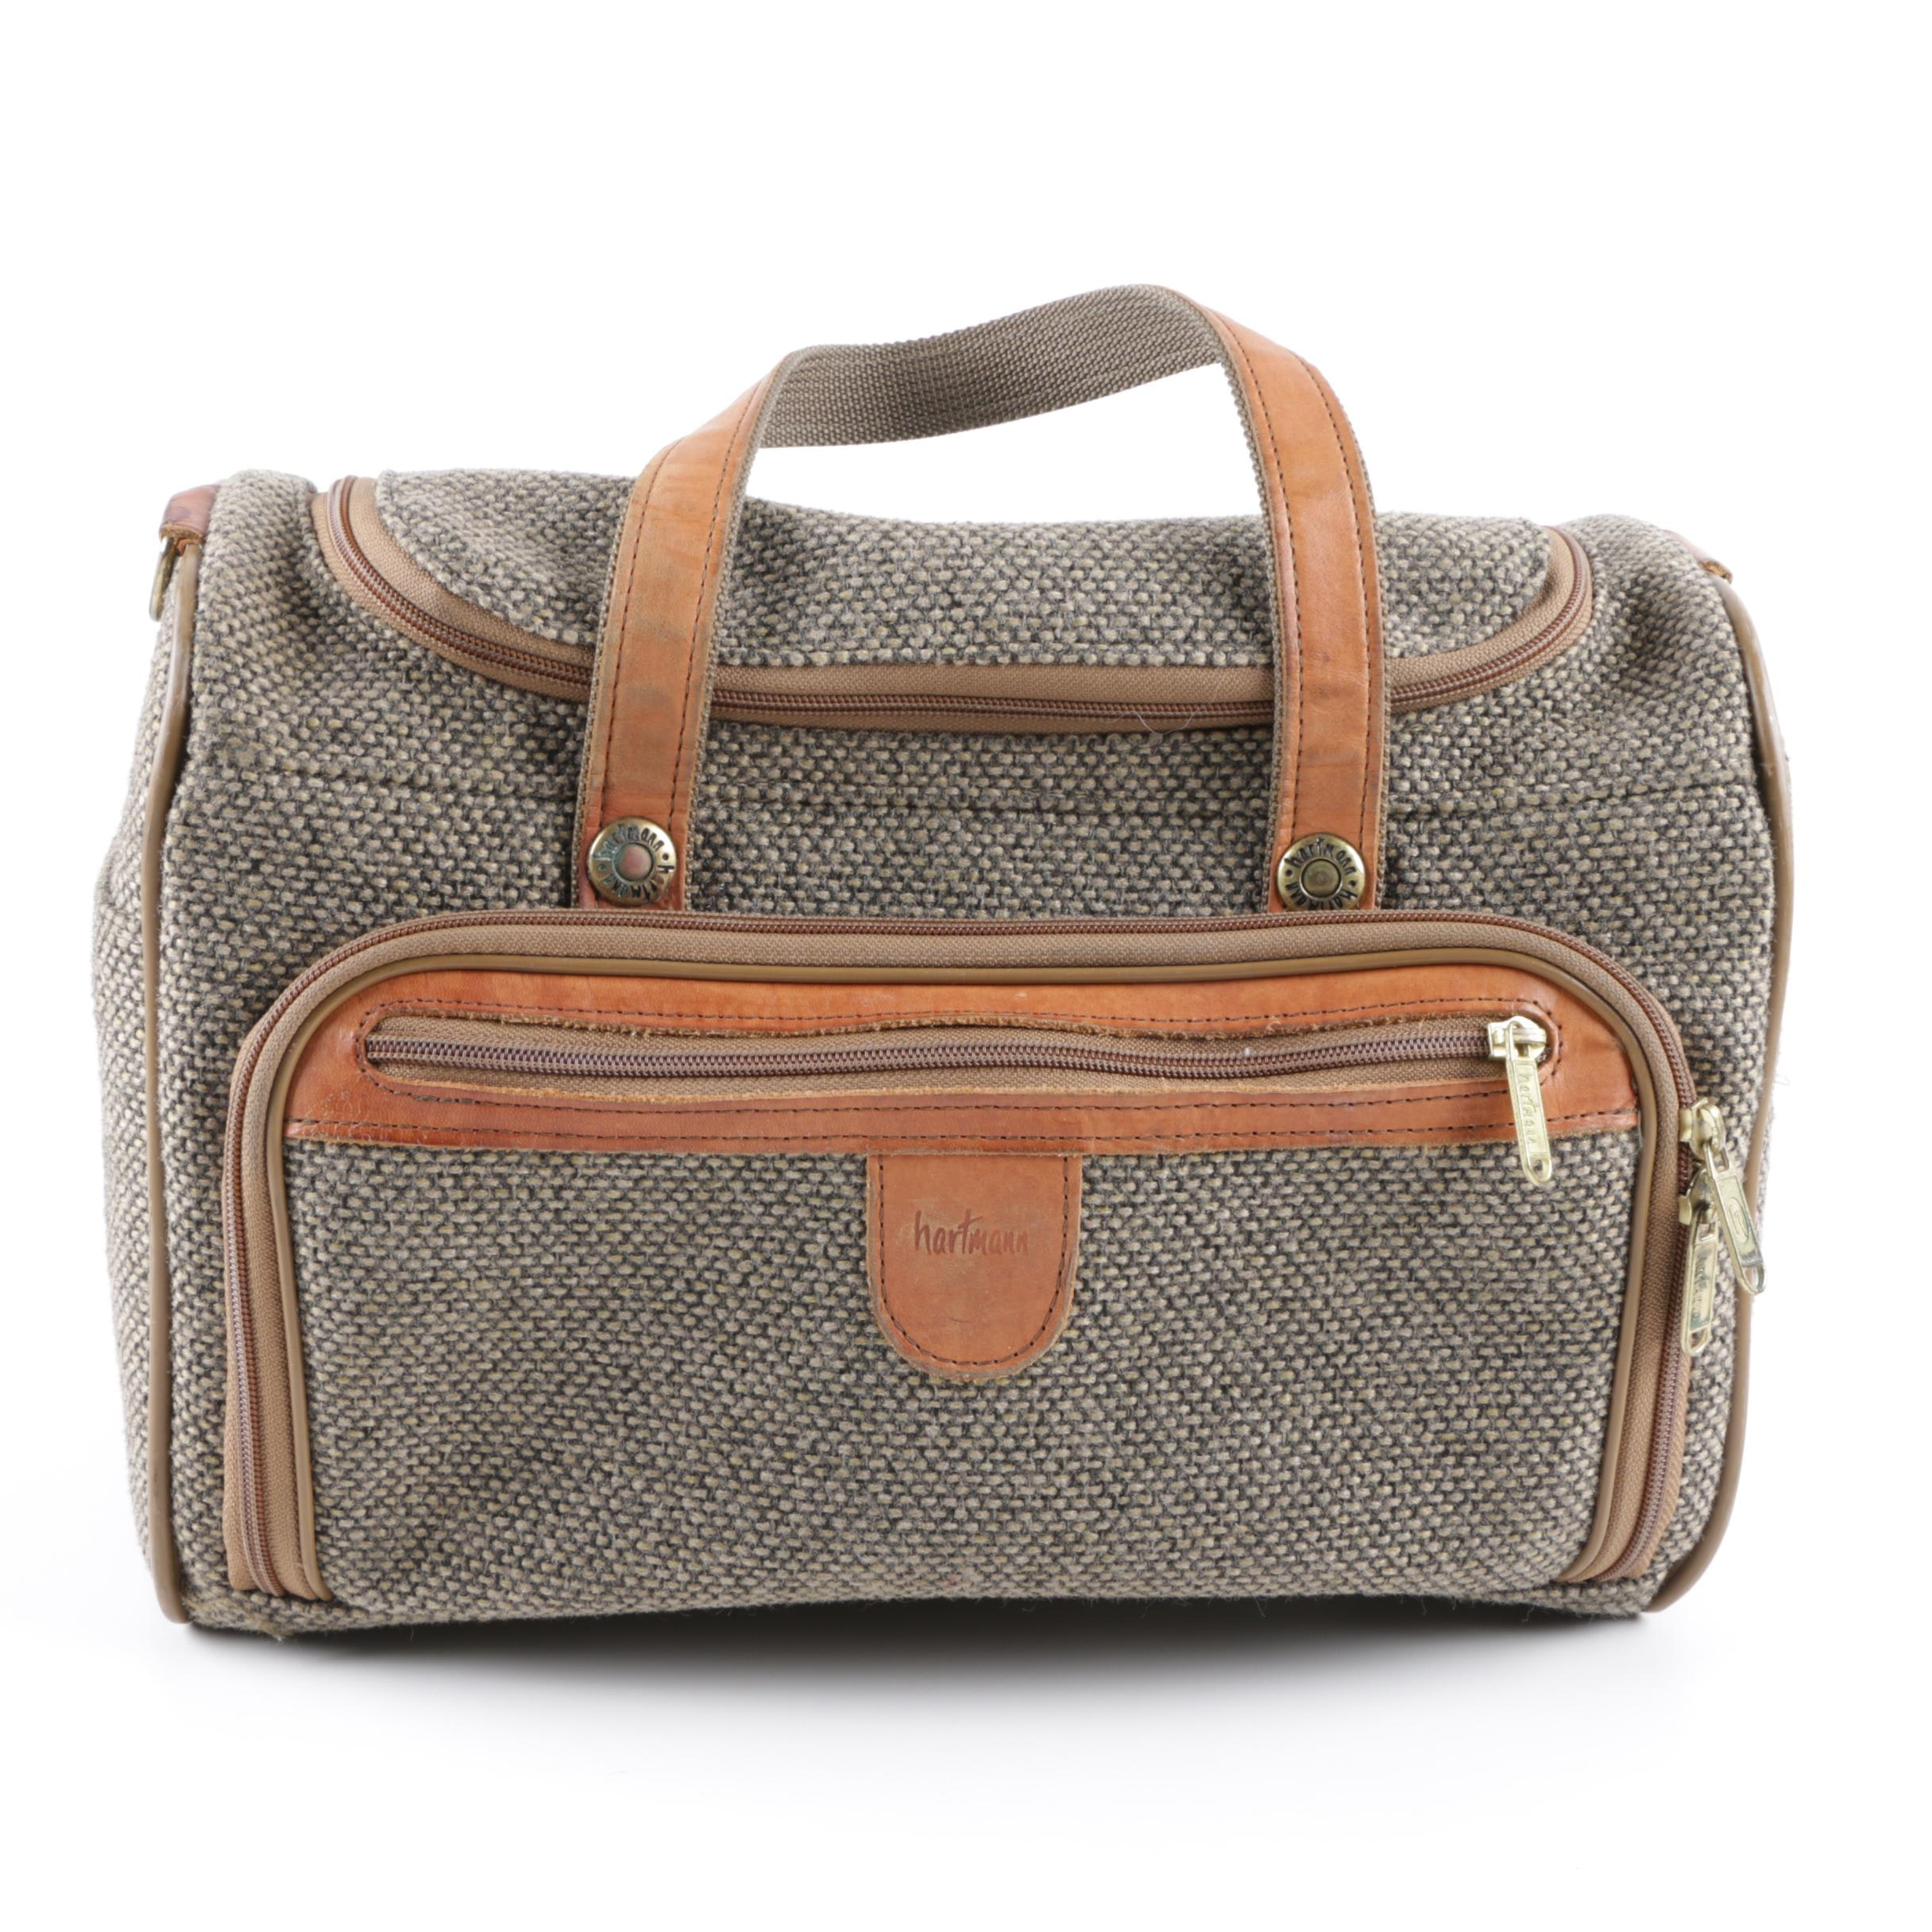 Hartmann Vintage Fabric and Leather Duffel Bag